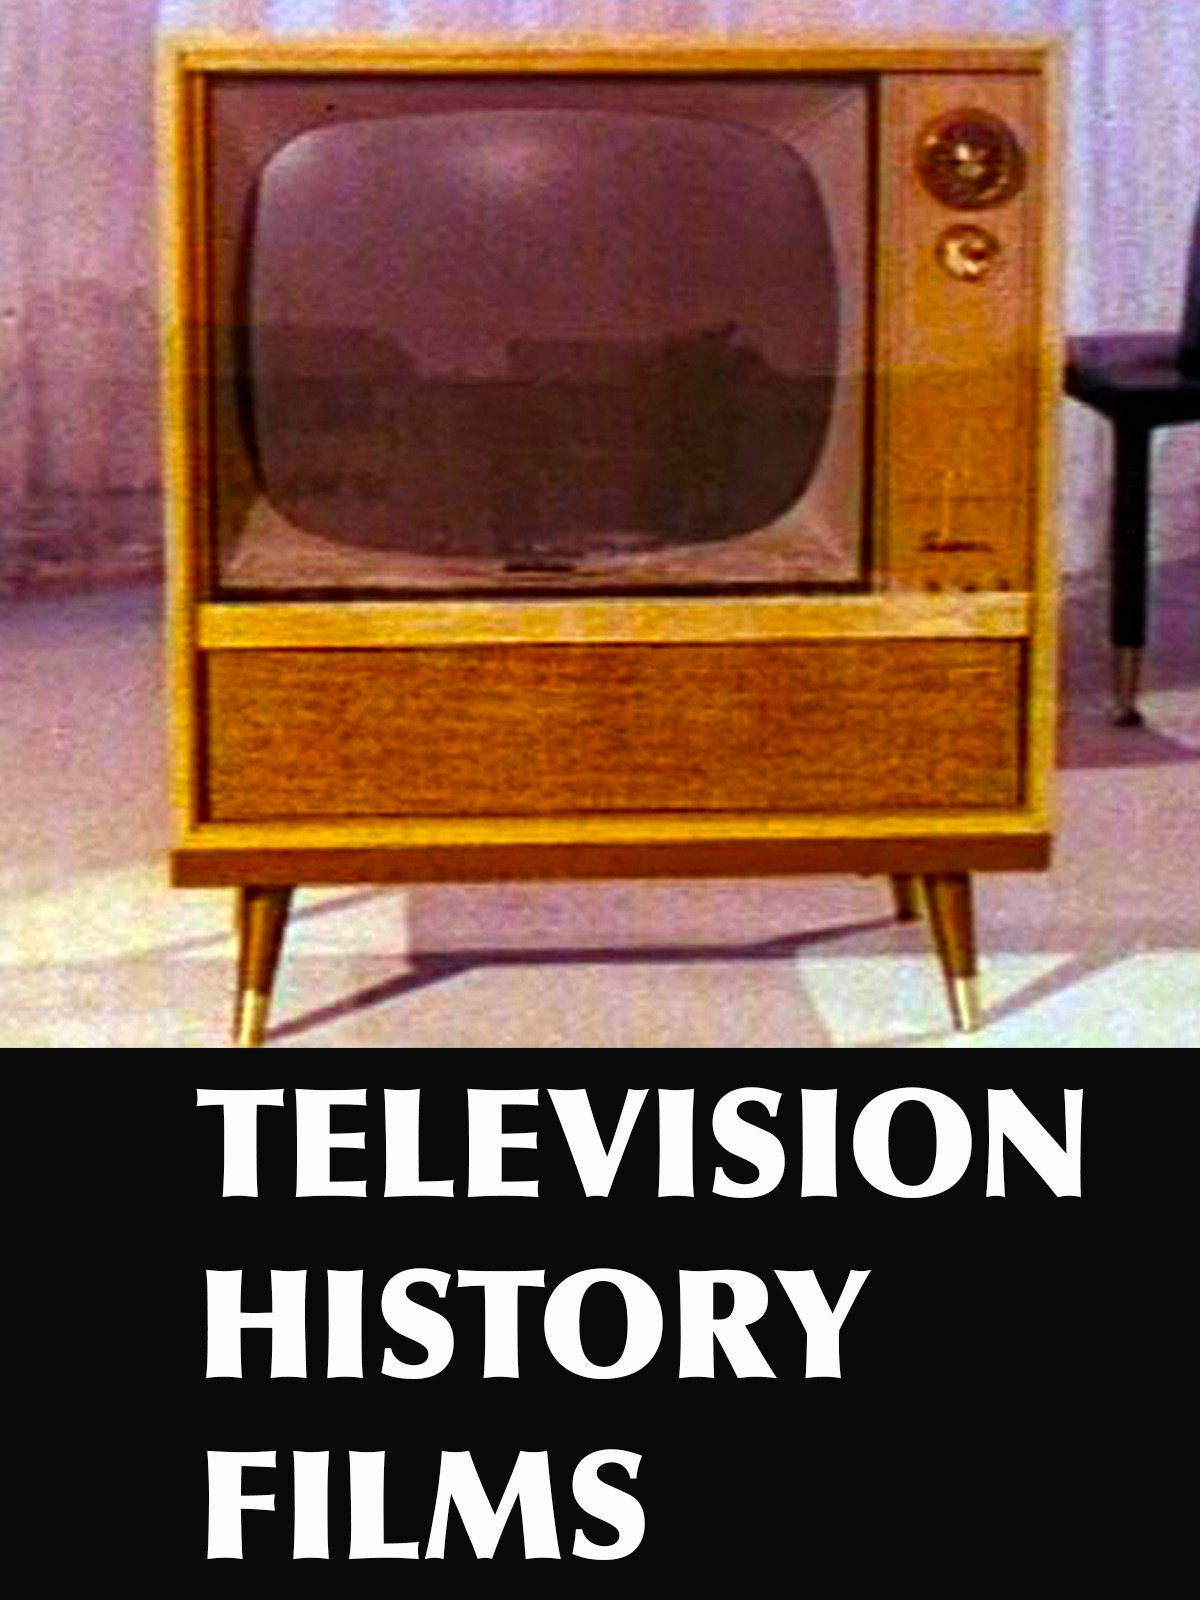 Television History Films